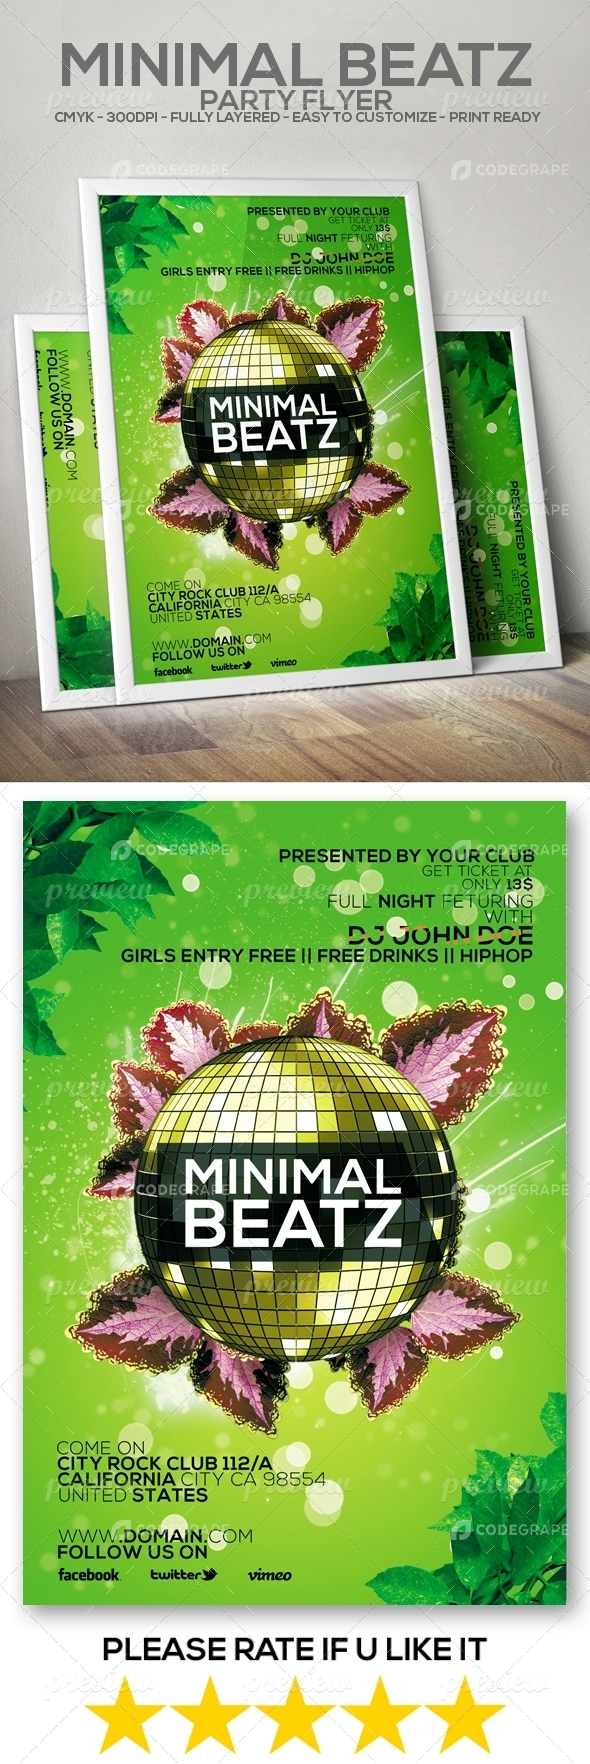 Minimal Beatz Party Flyer